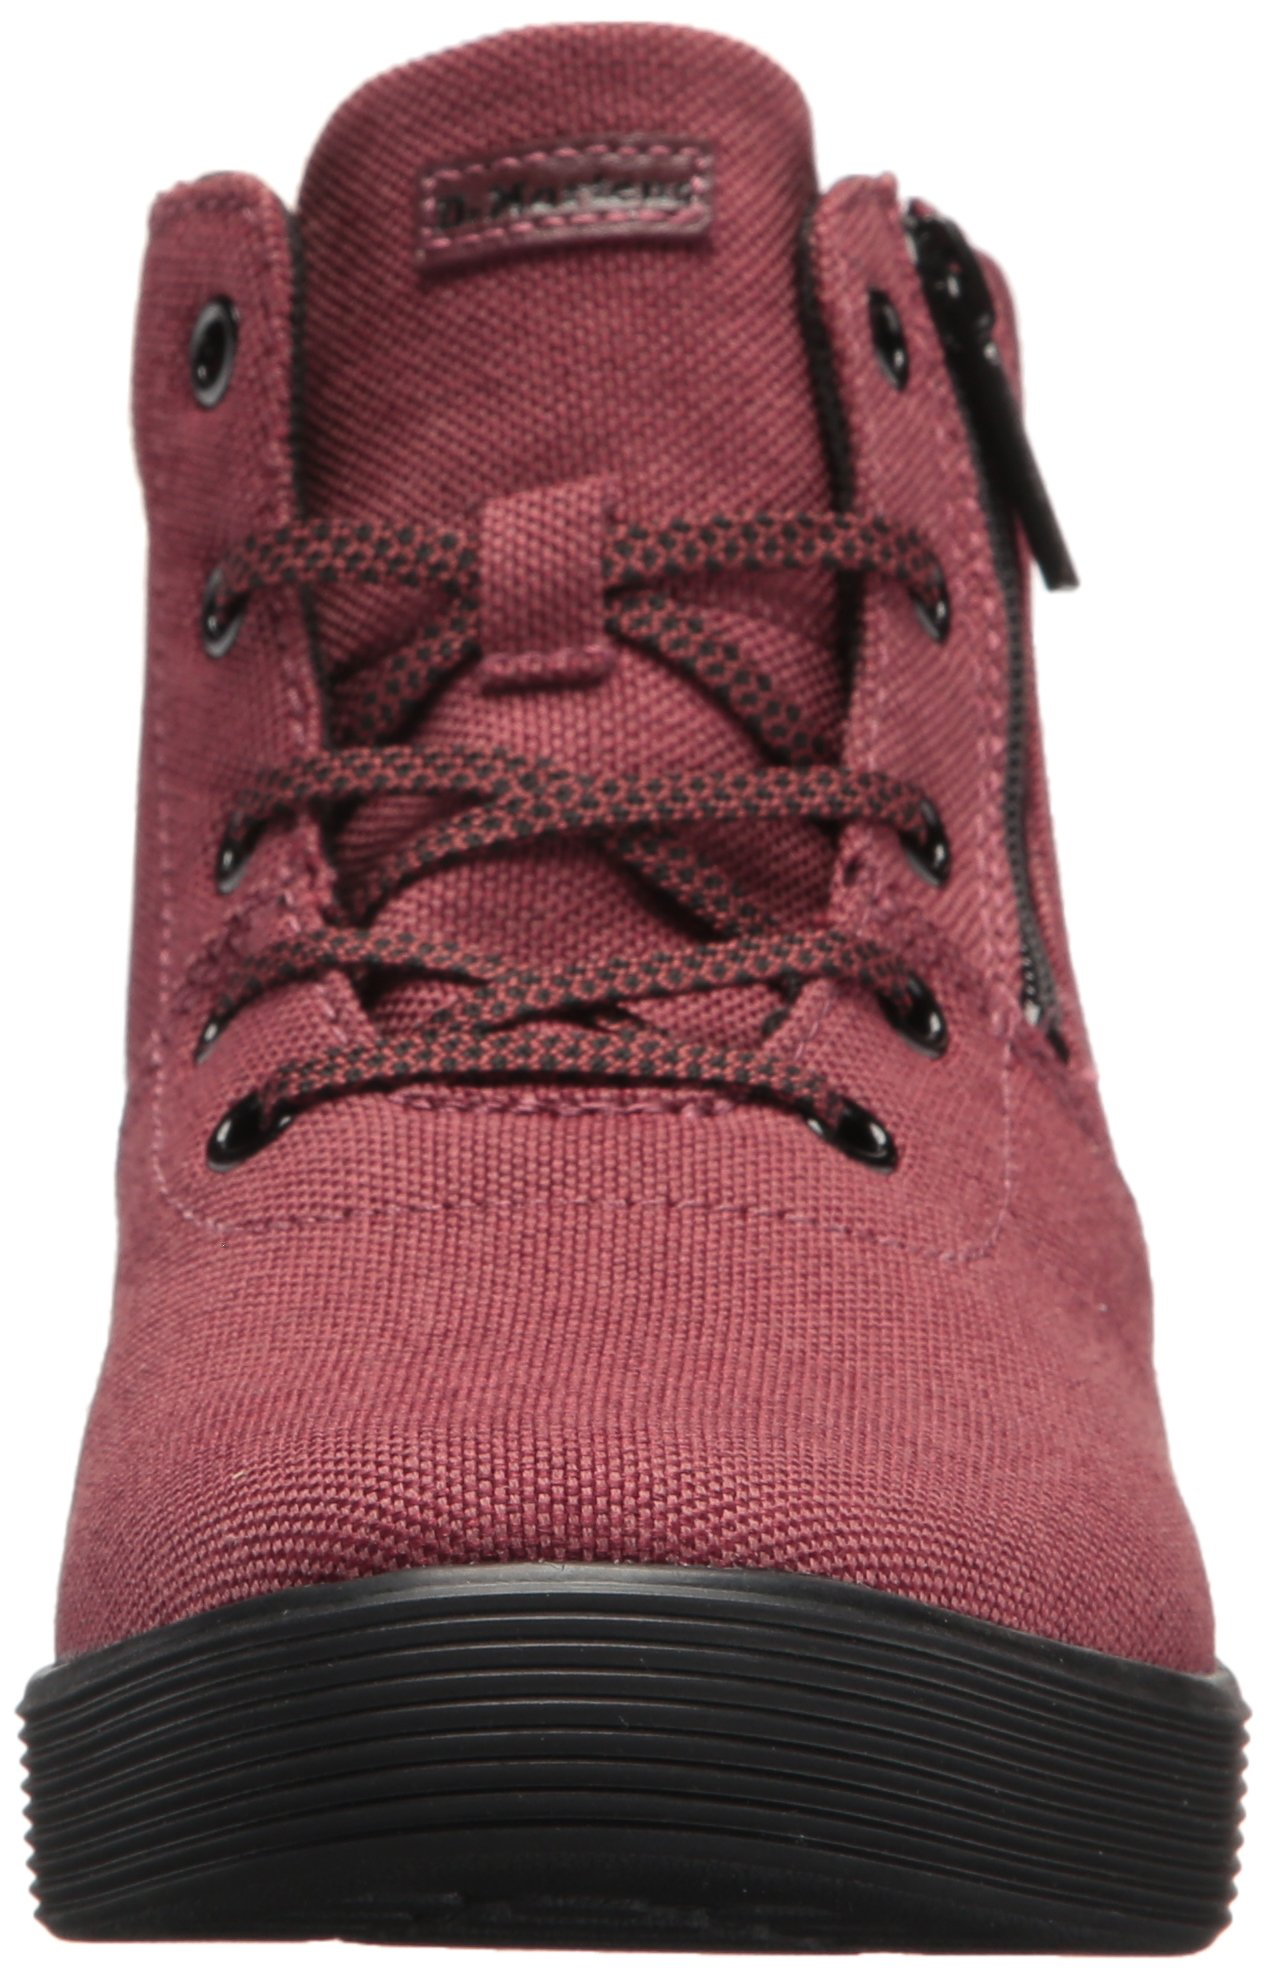 Dr. Martens Women's Maegley Fashion Boot, Cherry Red Woven Textile+Fine Canvas, 5 Medium UK (7 US) by Dr. Martens (Image #4)